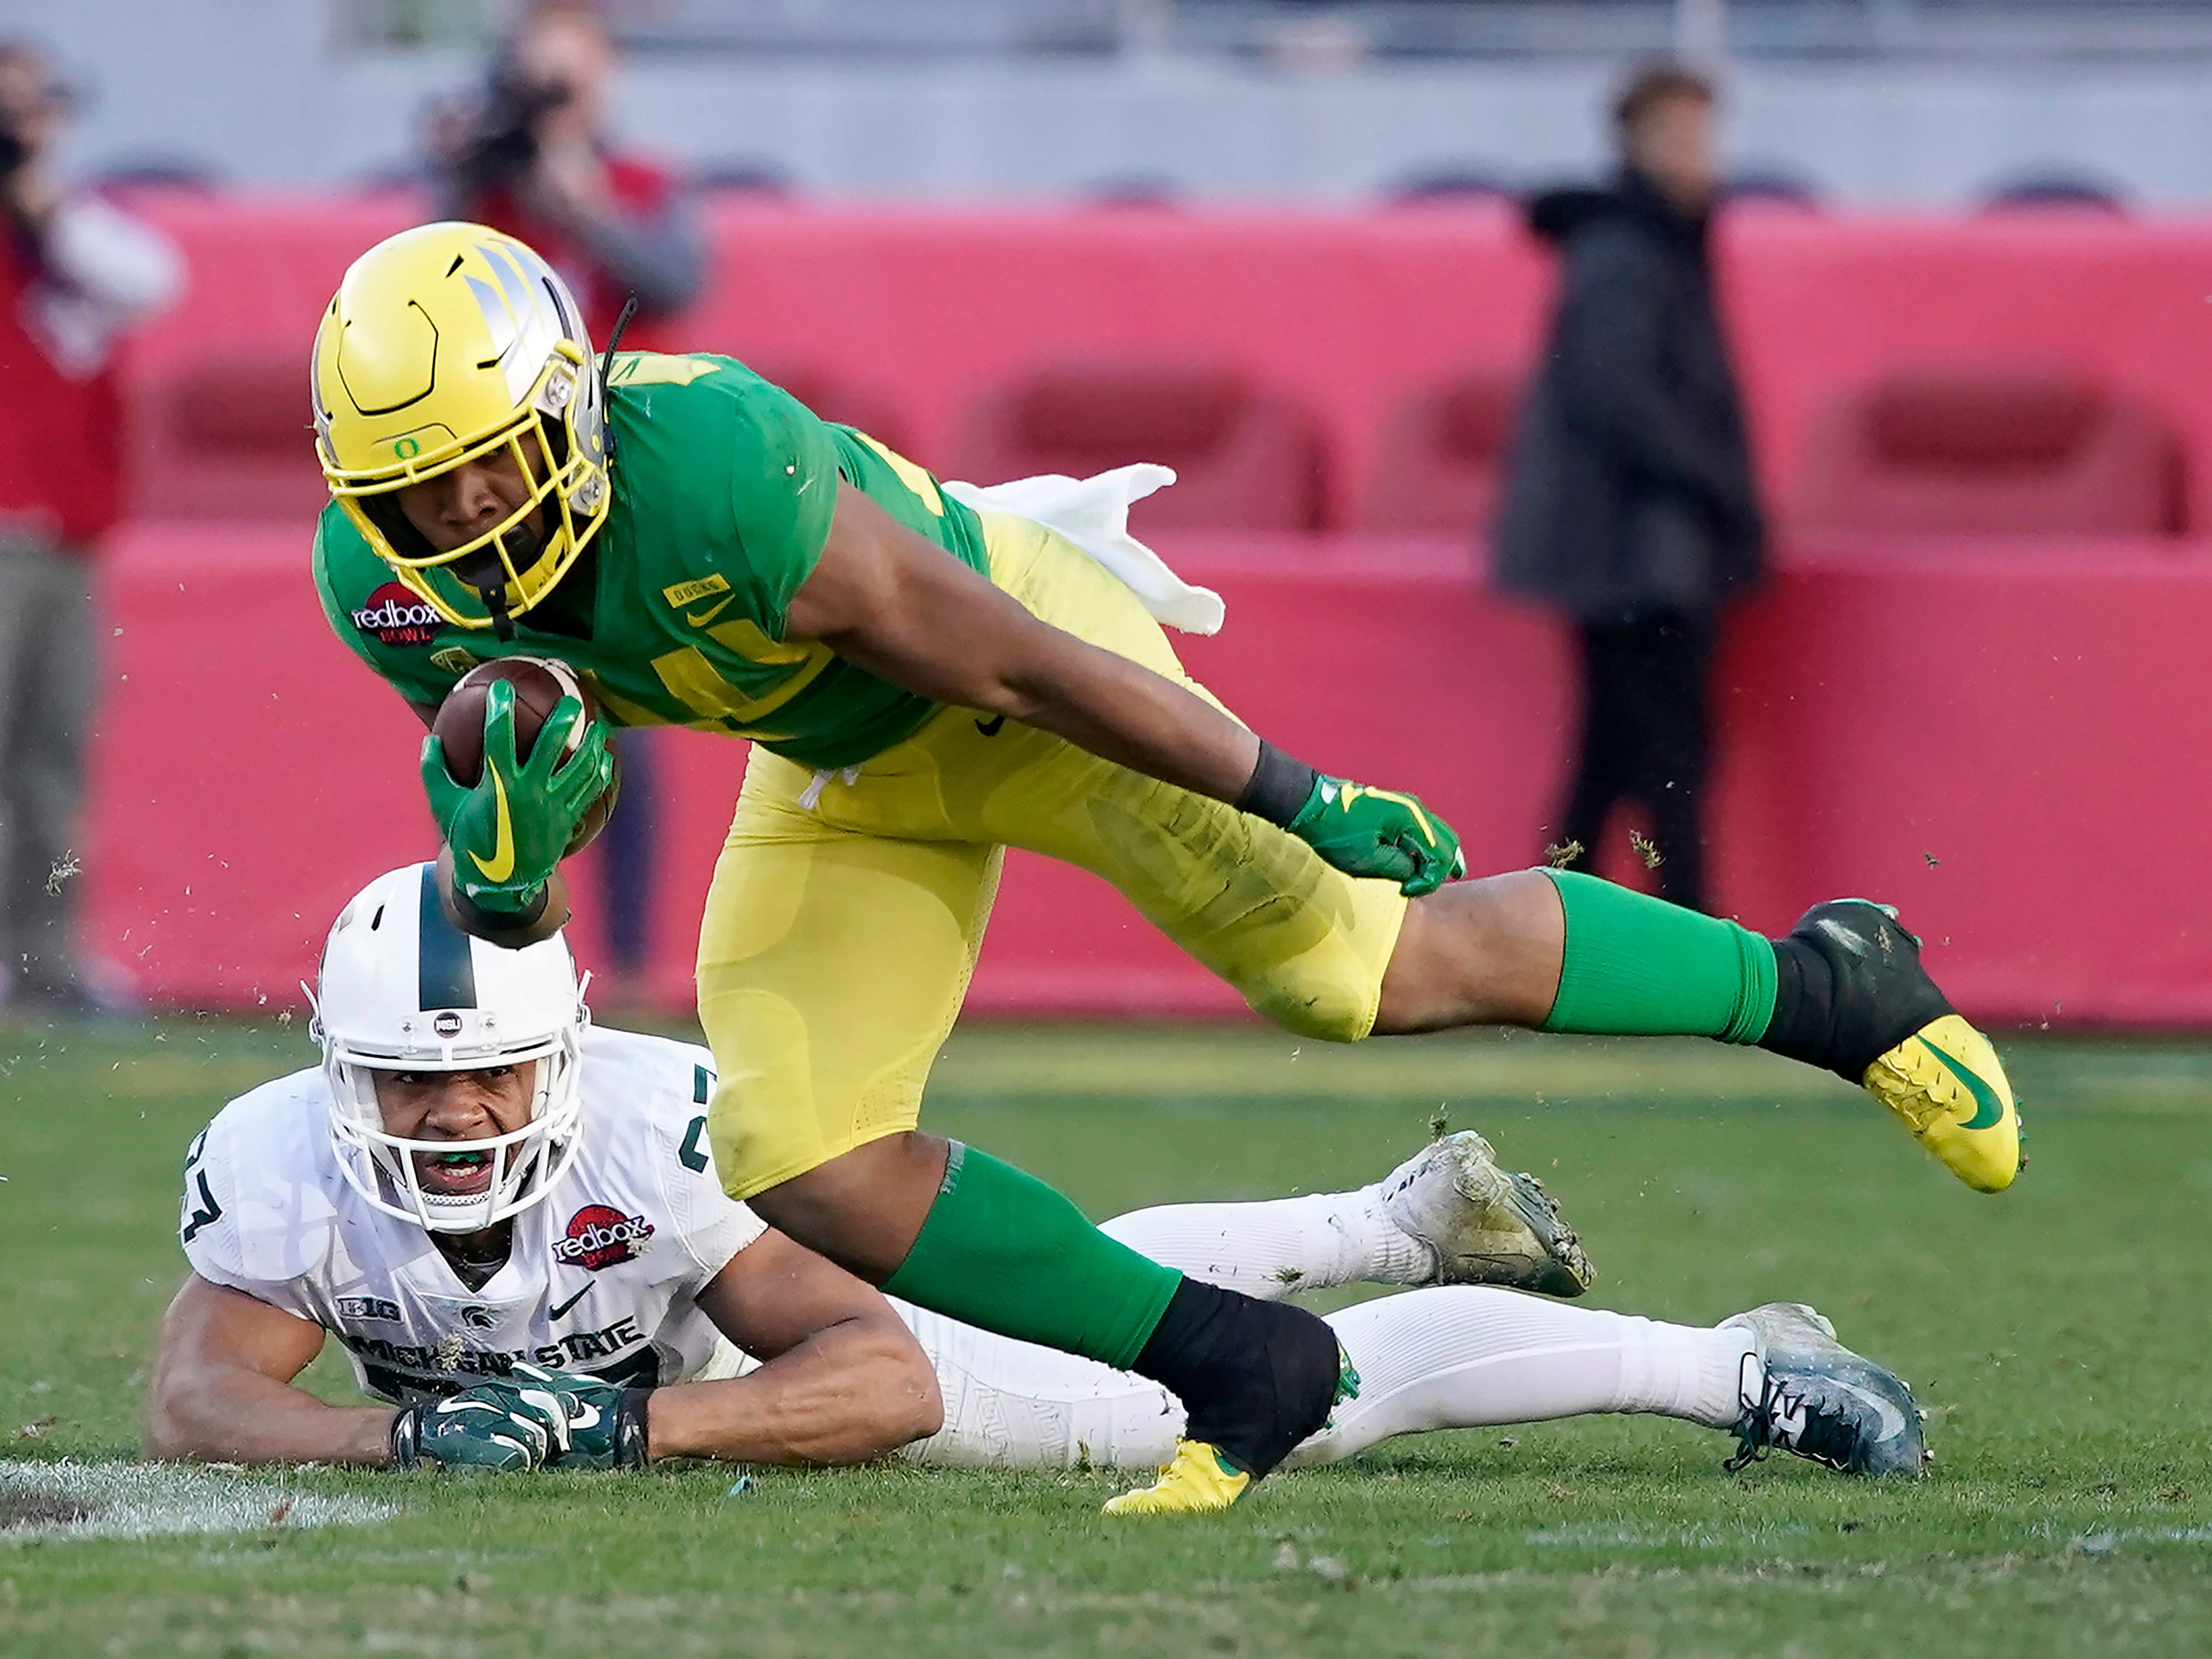 Oregon running back CJ Verdell (34) breaks a tackle by Michigan State safety Khari Willis (27) during the second half of the Redbox Bowl NCAA college football game Monday, Dec. 31, 2018, in Santa Clara, Calif. Oregon won 7-6.